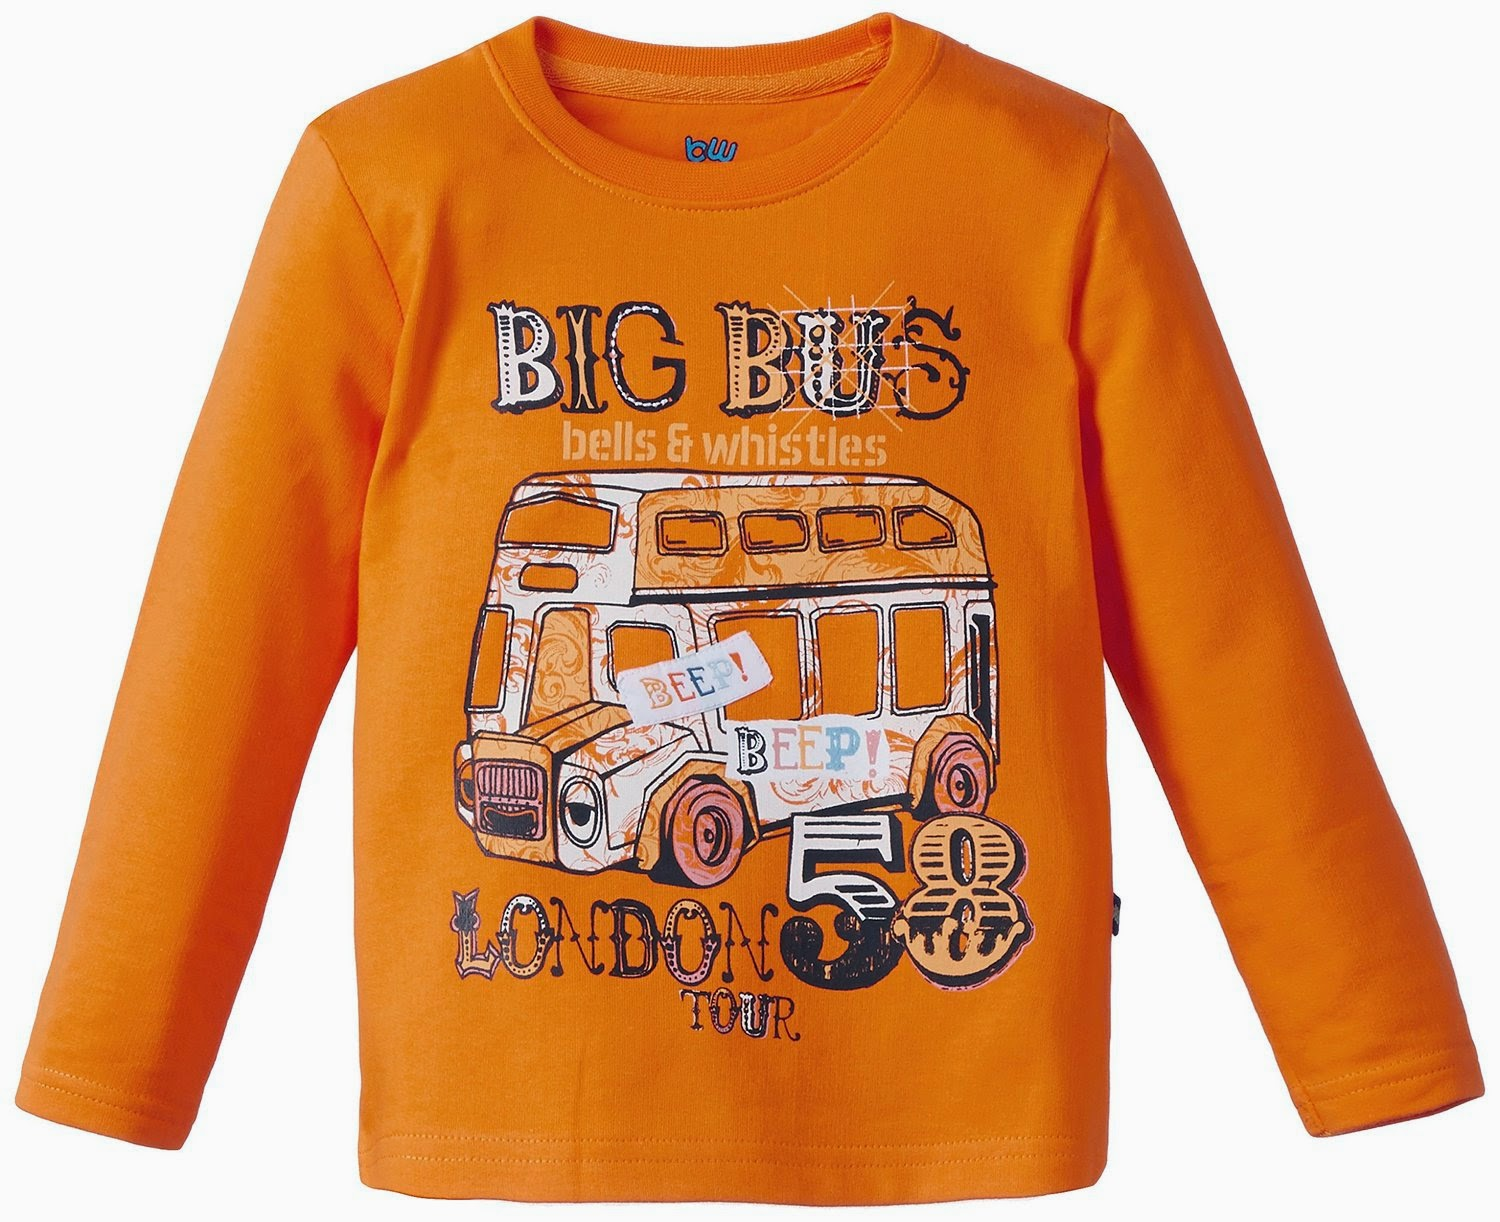 Buy Bells & Whistles Boy's T-Shirt Rs. 419 only at Amazon.